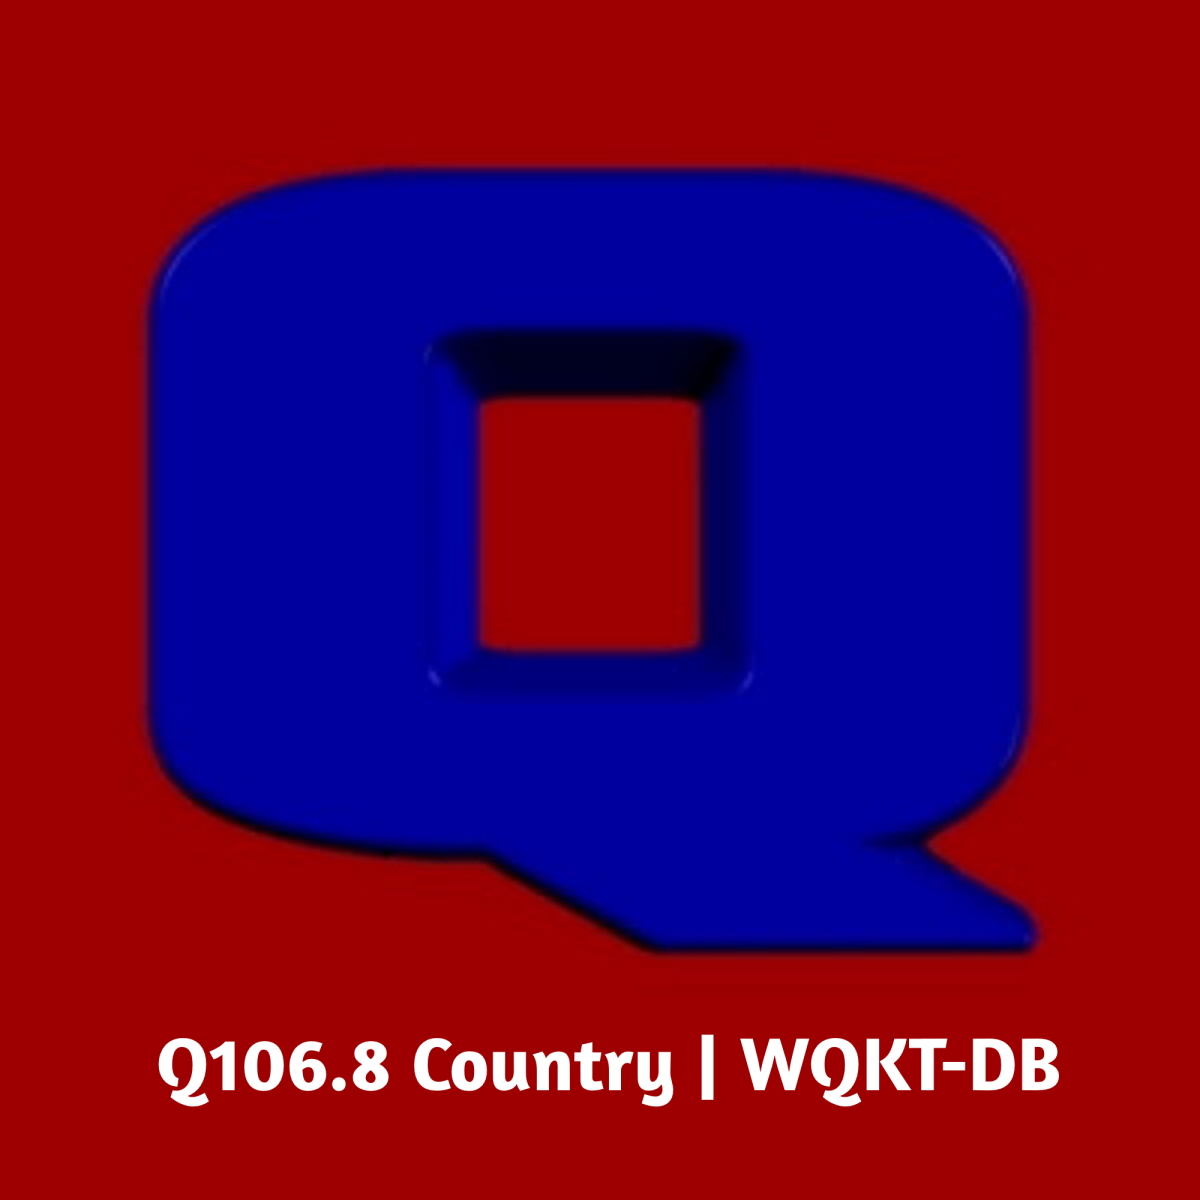 Art for Request by Q106.8 Country | WQKT-DB